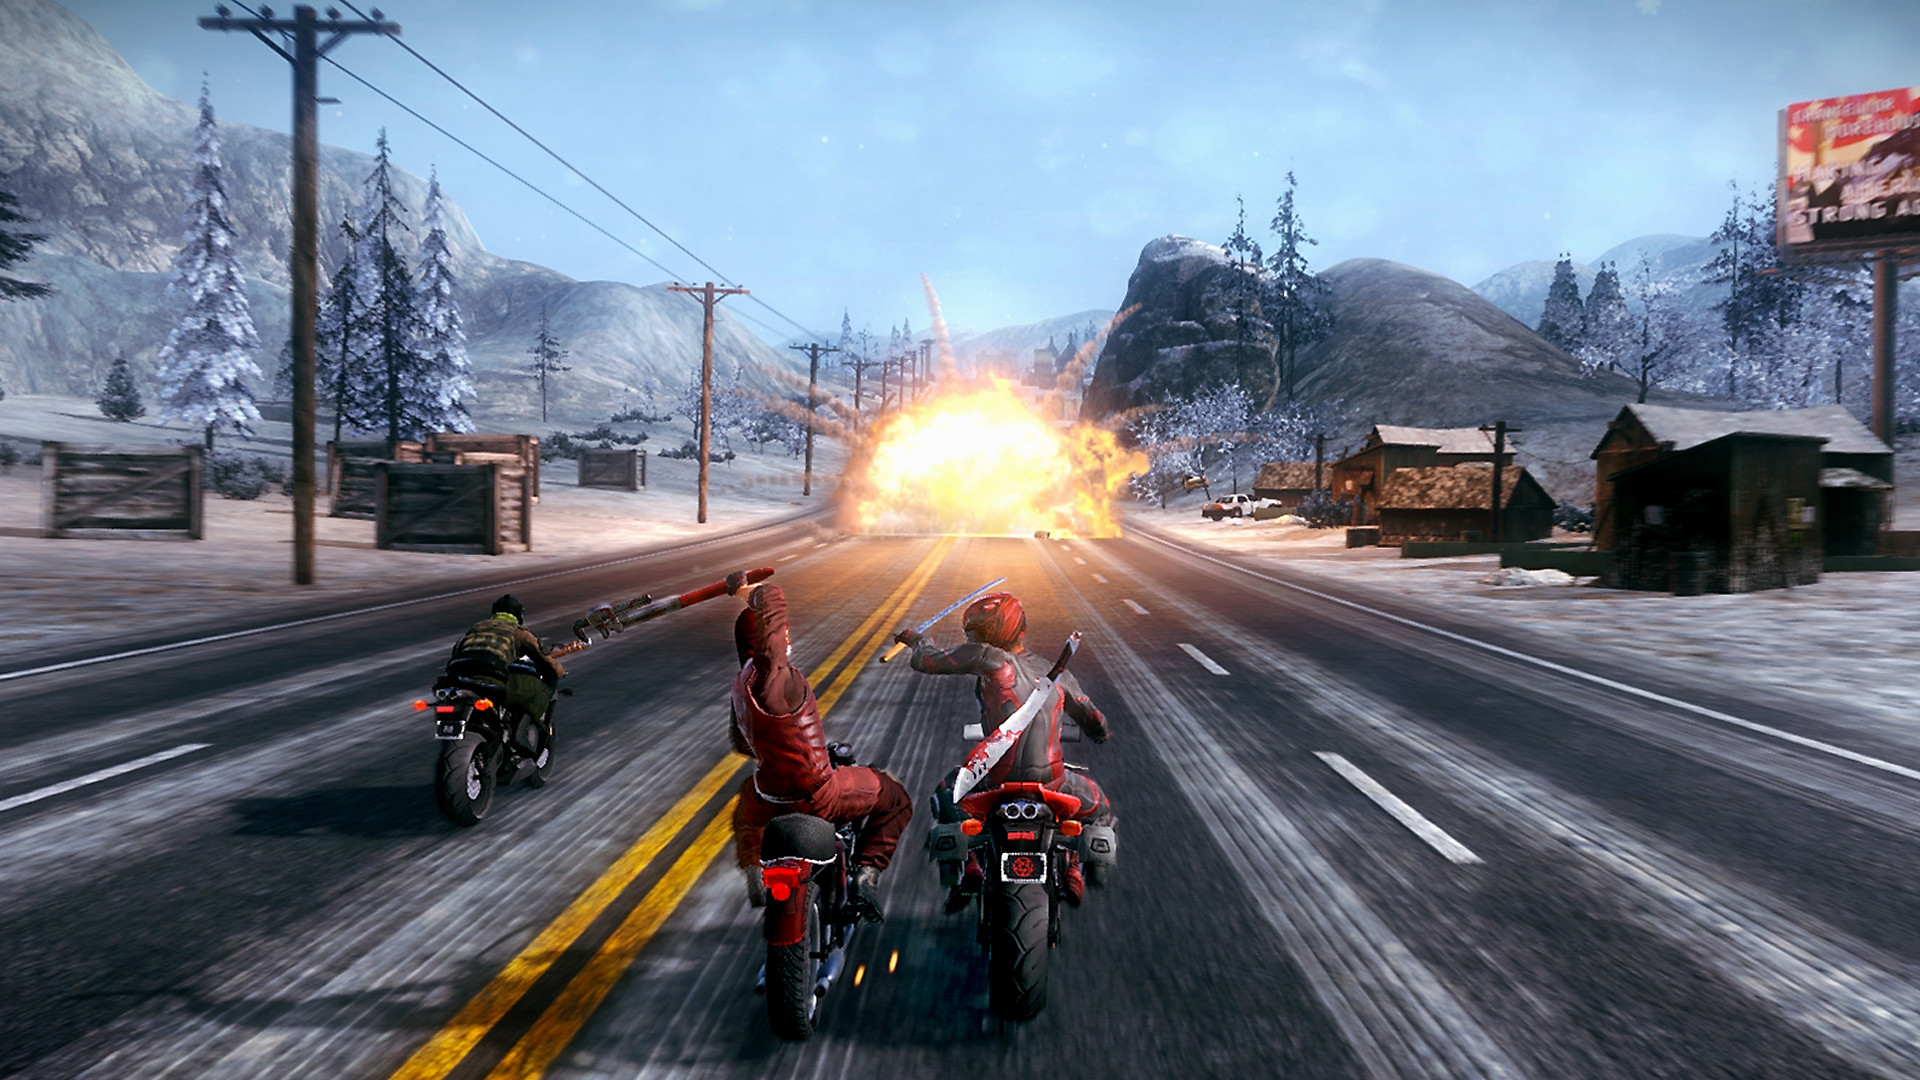 Gameplay screen, two motorcyclists fighting on bikes